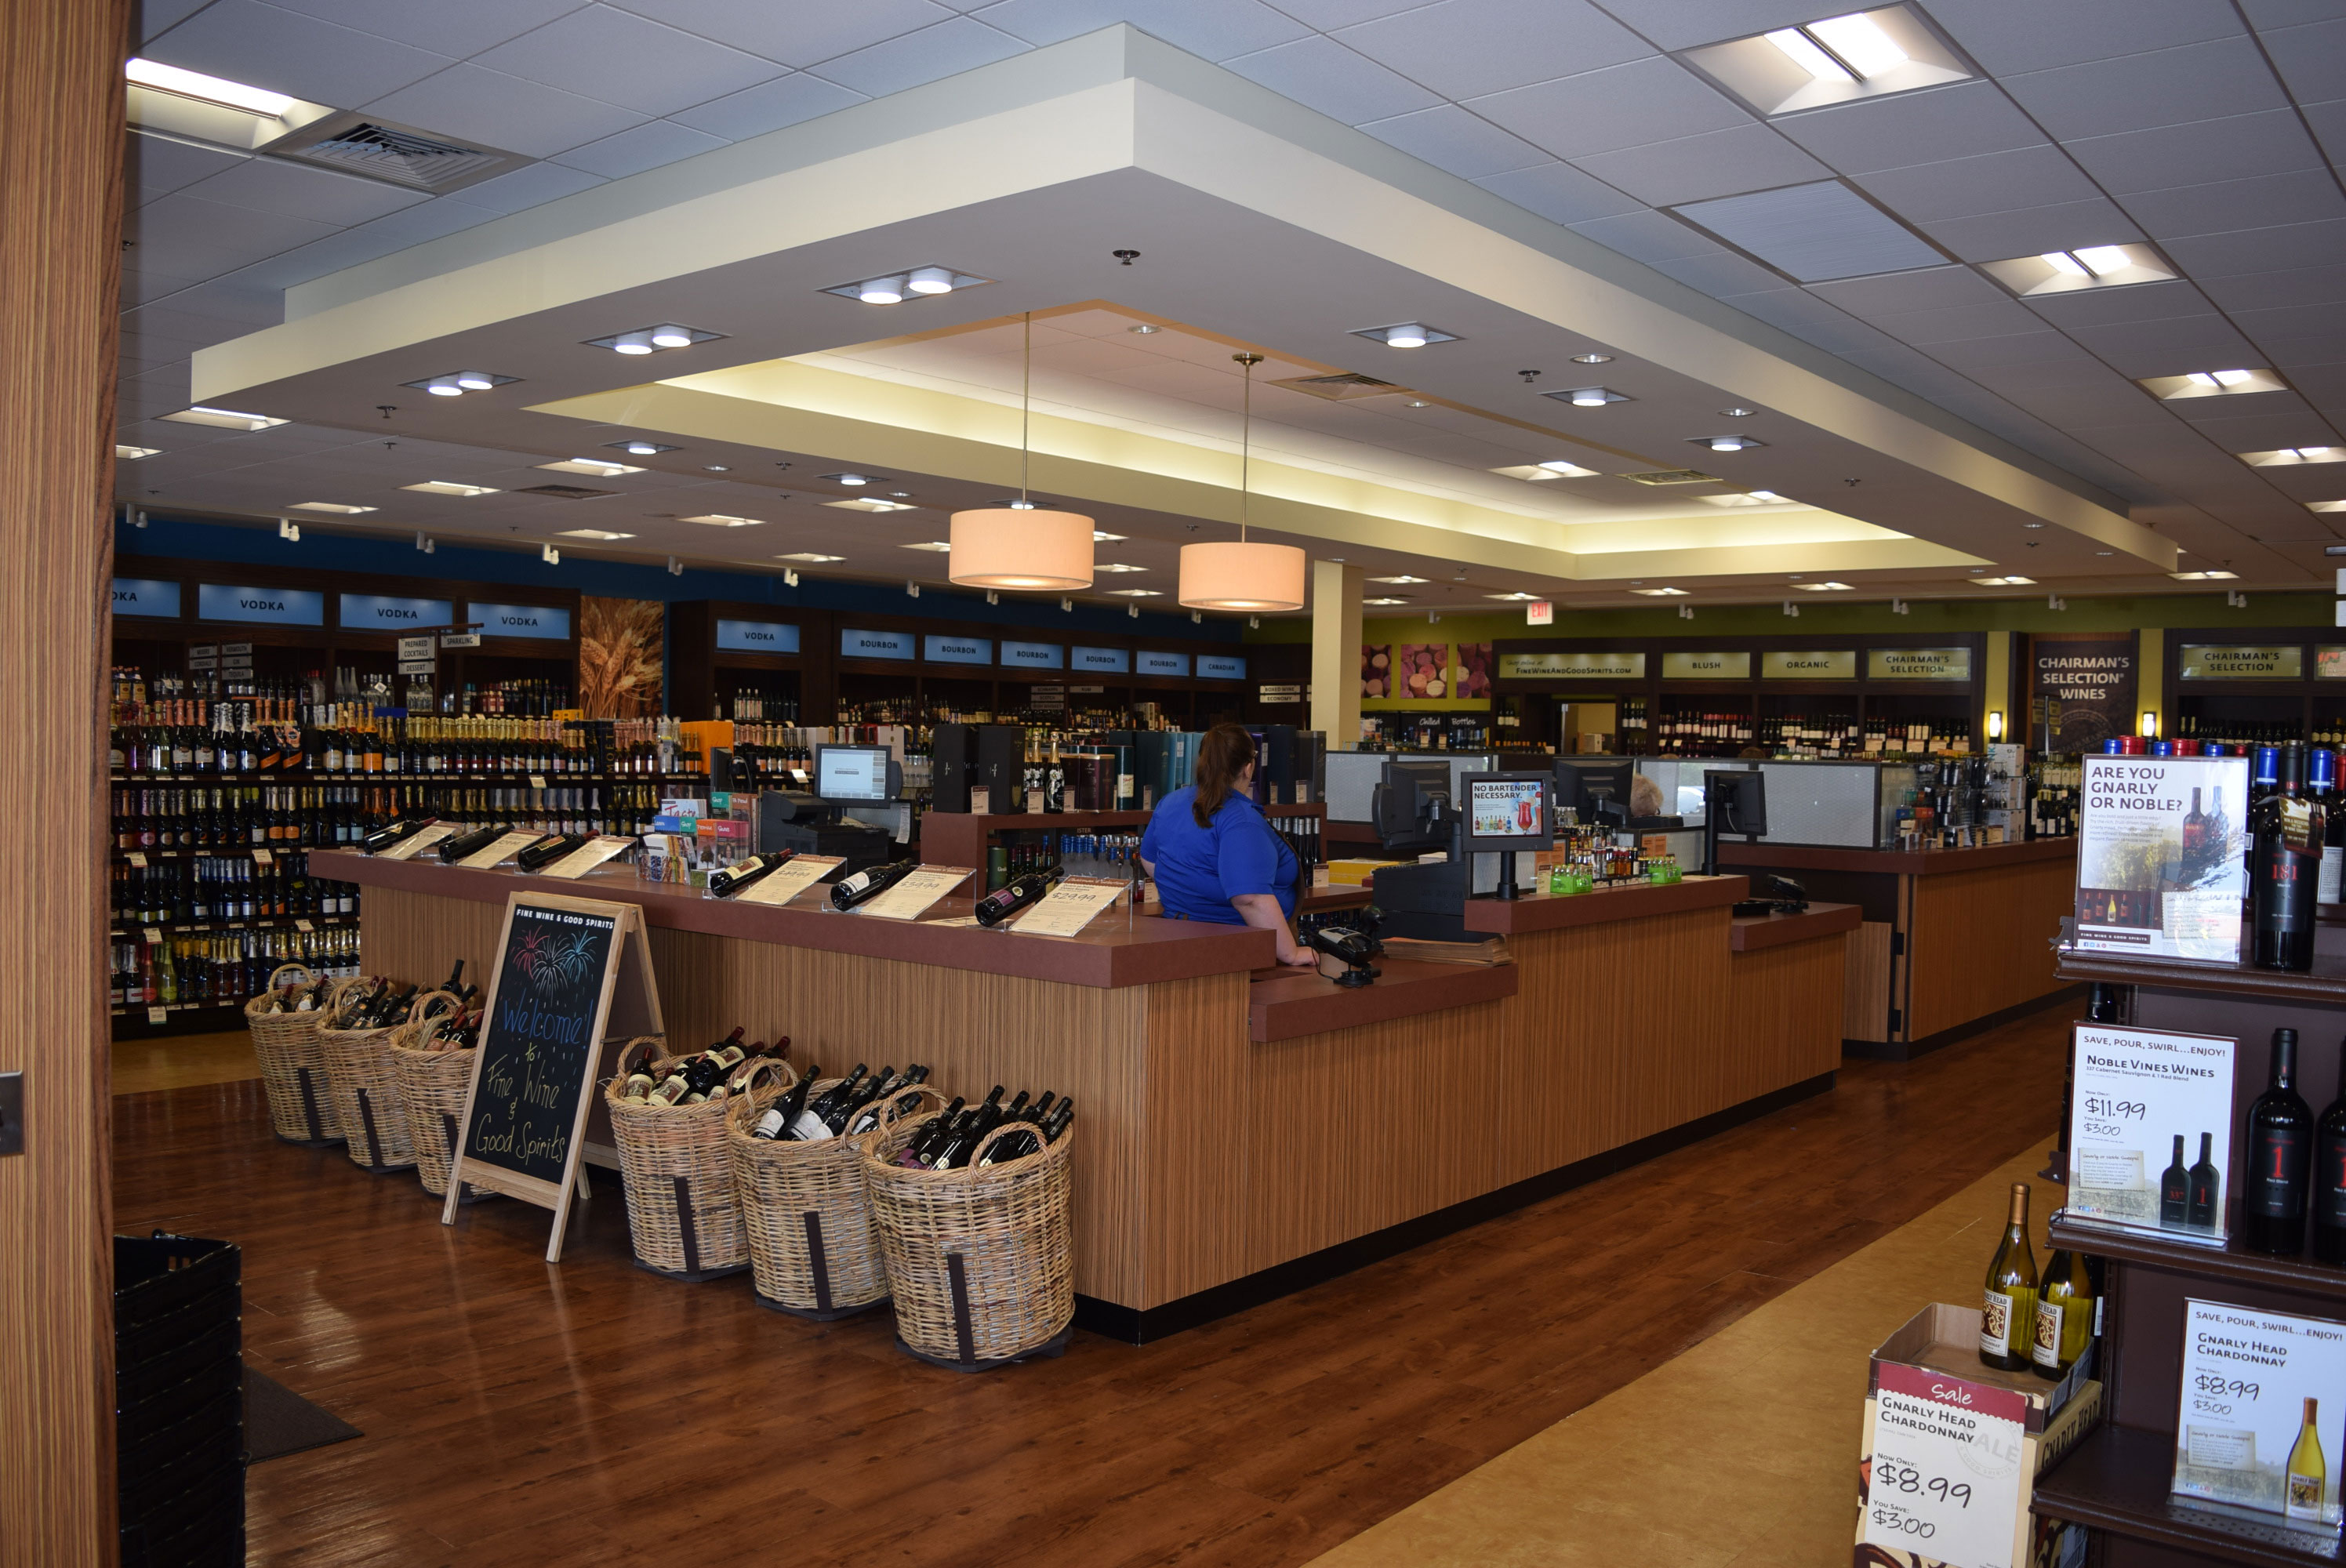 Pennsylvania Liquor Control Board, Retail Stores - Government